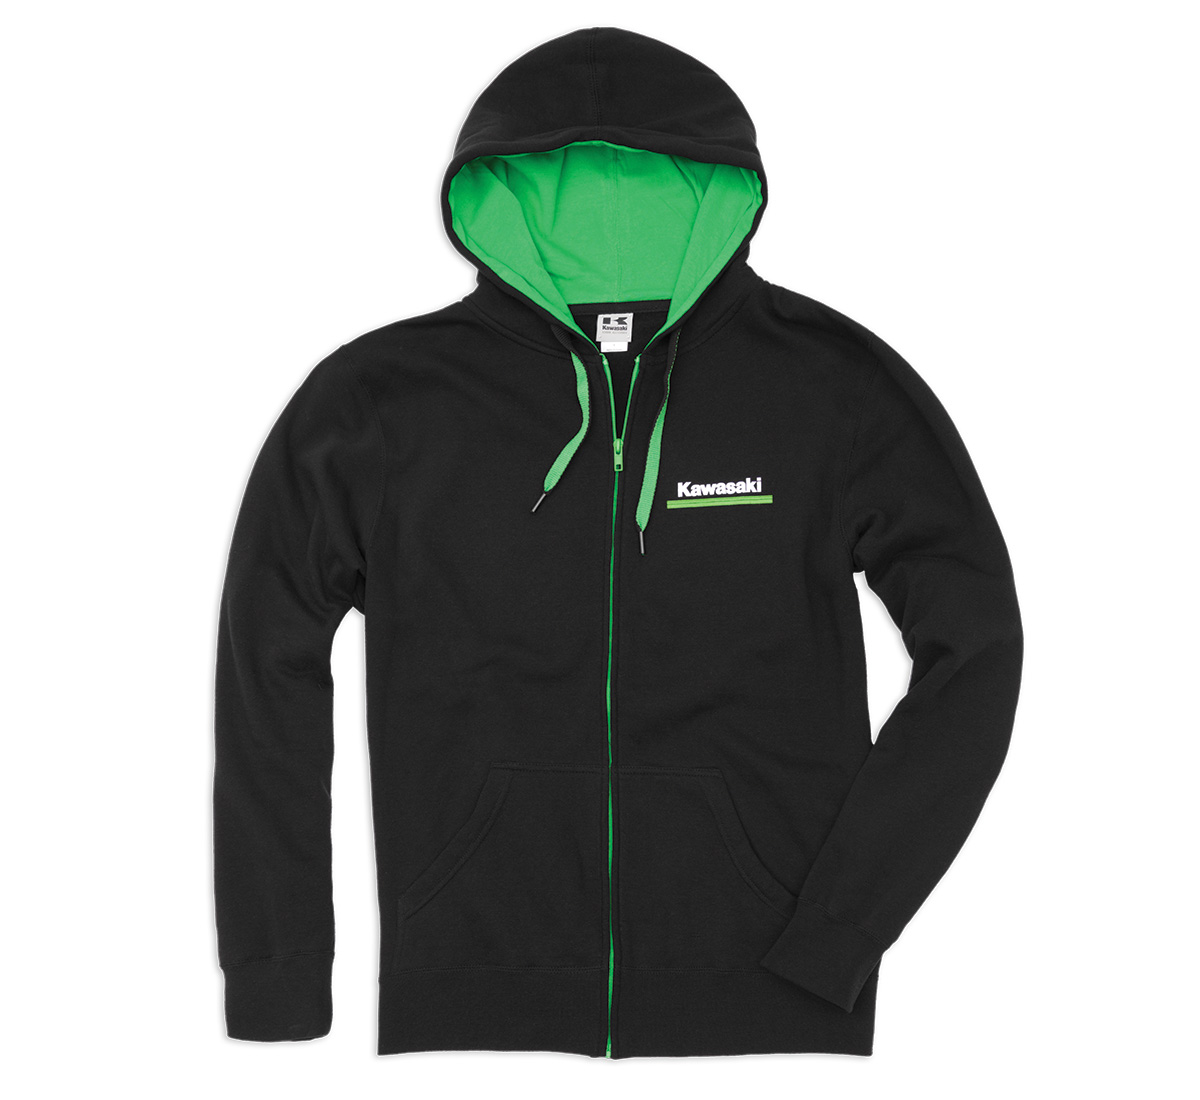 Kawasaki 3 Green Lines Zip-Front Hooded Sweatshirt